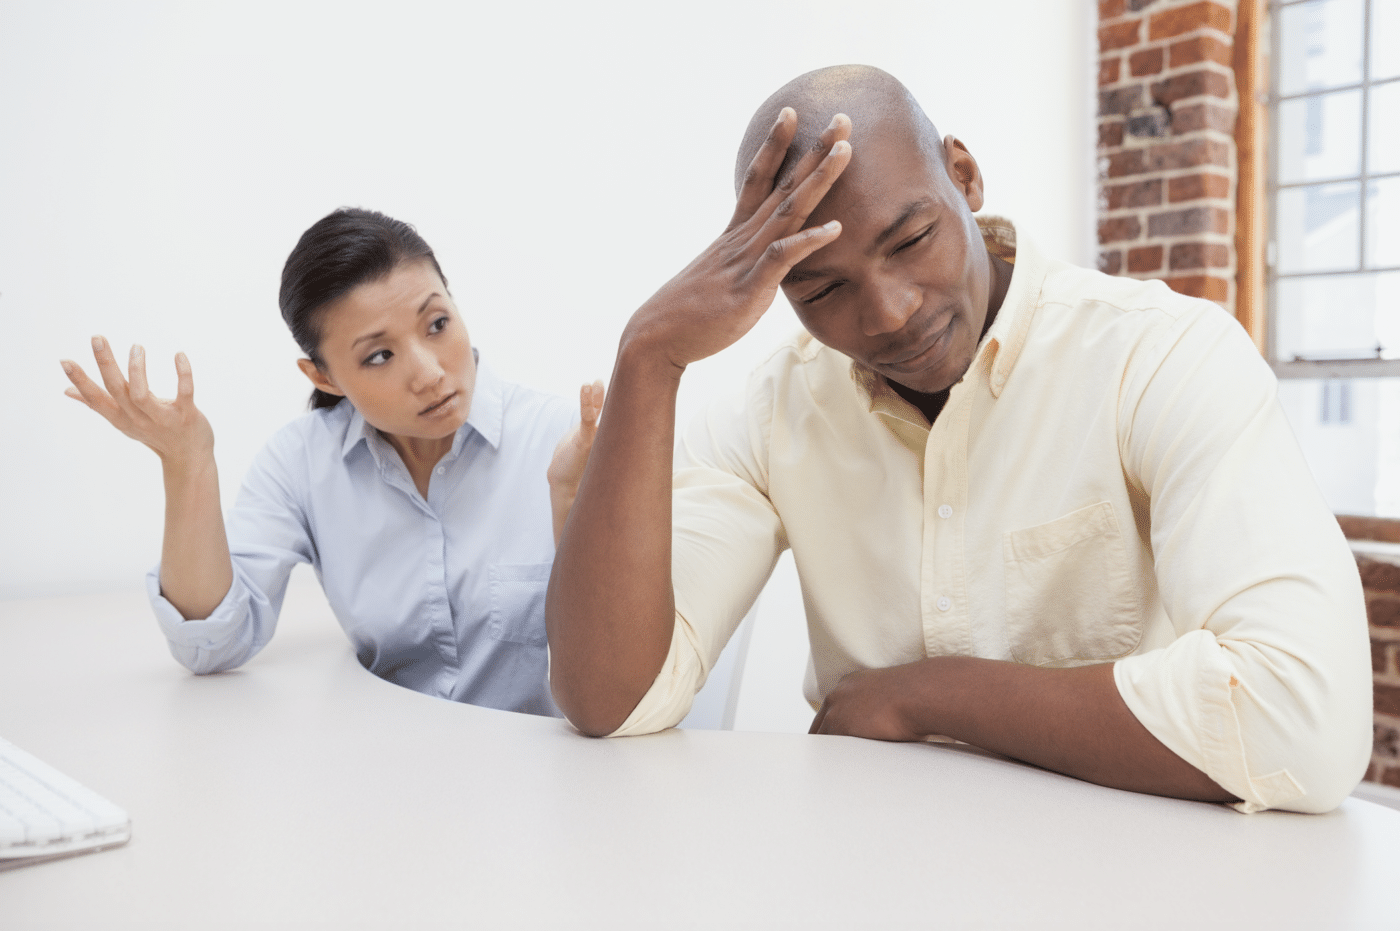 5 Ways to Engage with an Argument Dodger - Avoiding Conflict